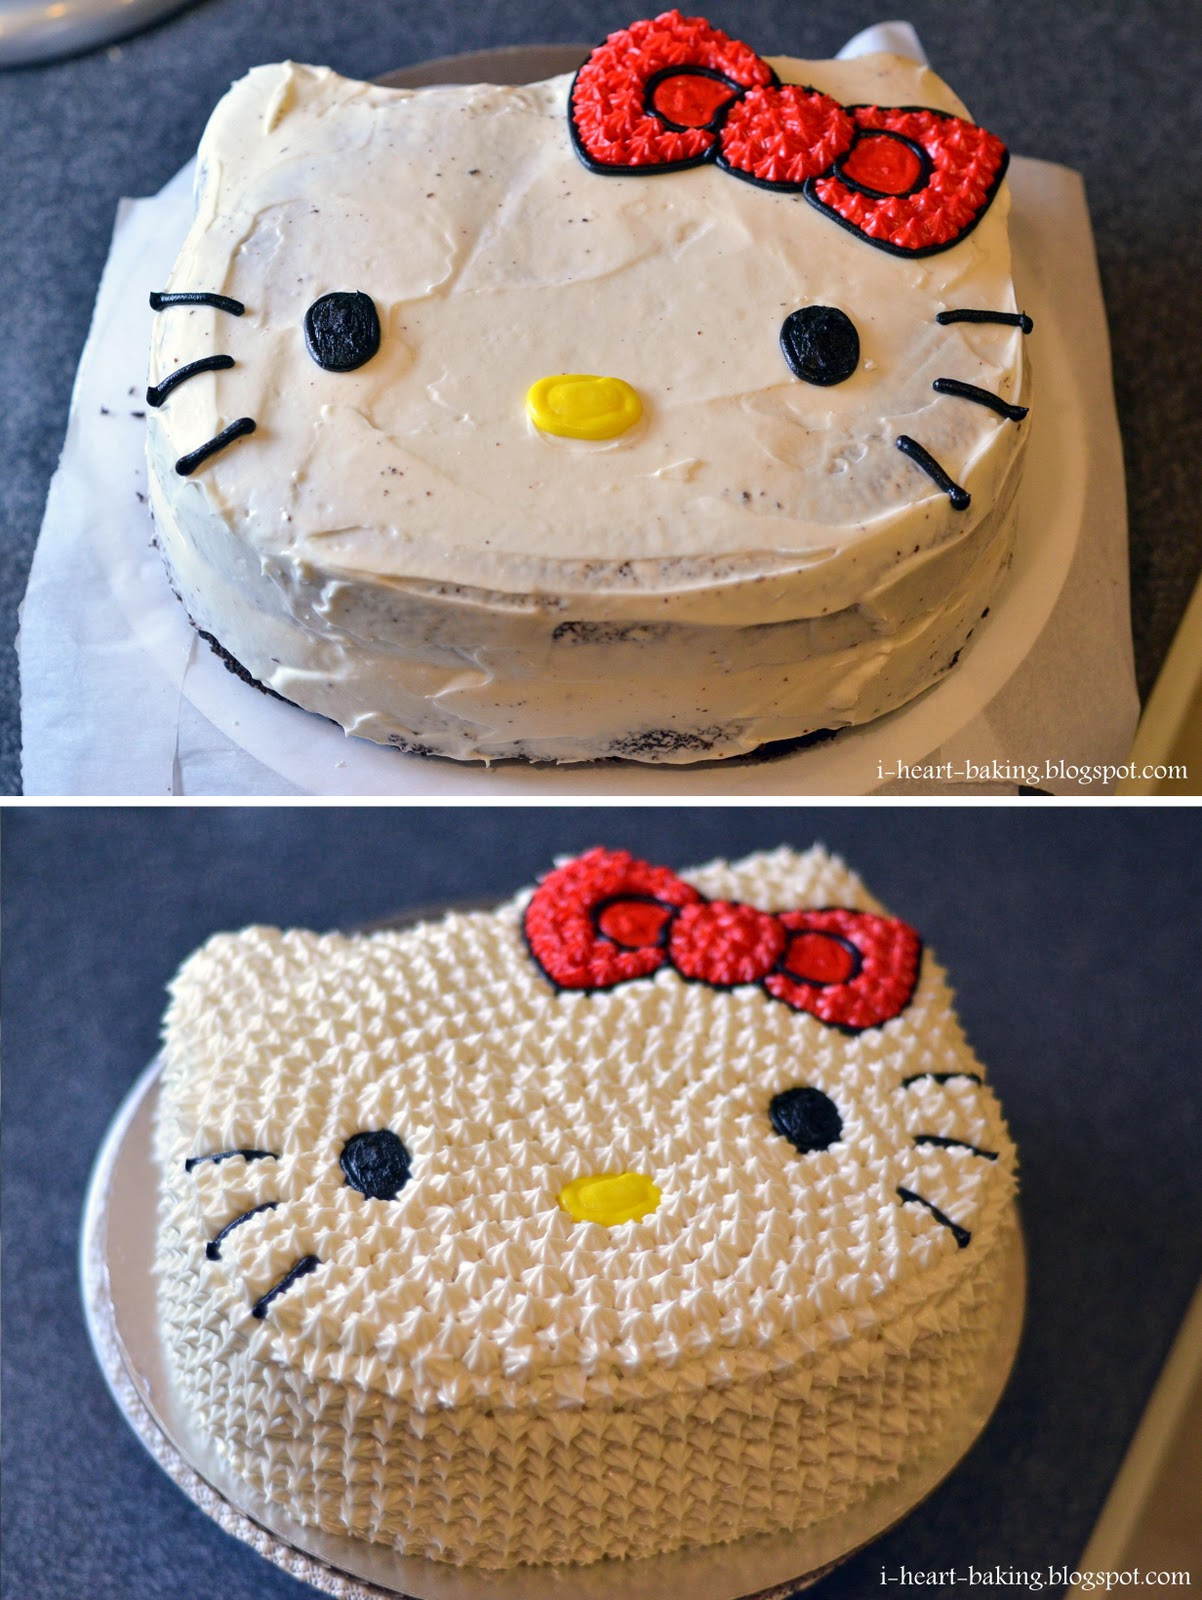 Images Of A Hello Kitty Cake : i heart baking!: hello kitty cake